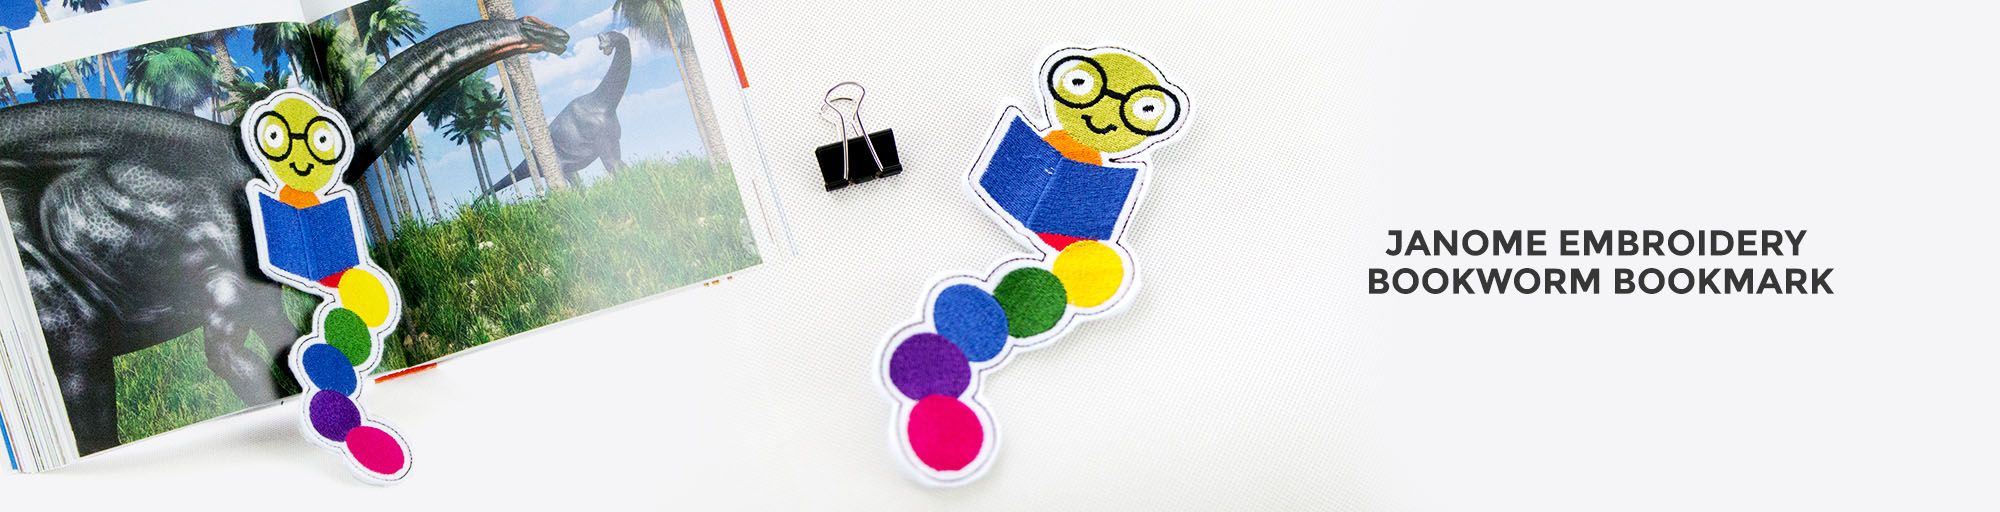 Janome bookworm bookmark embroidery project